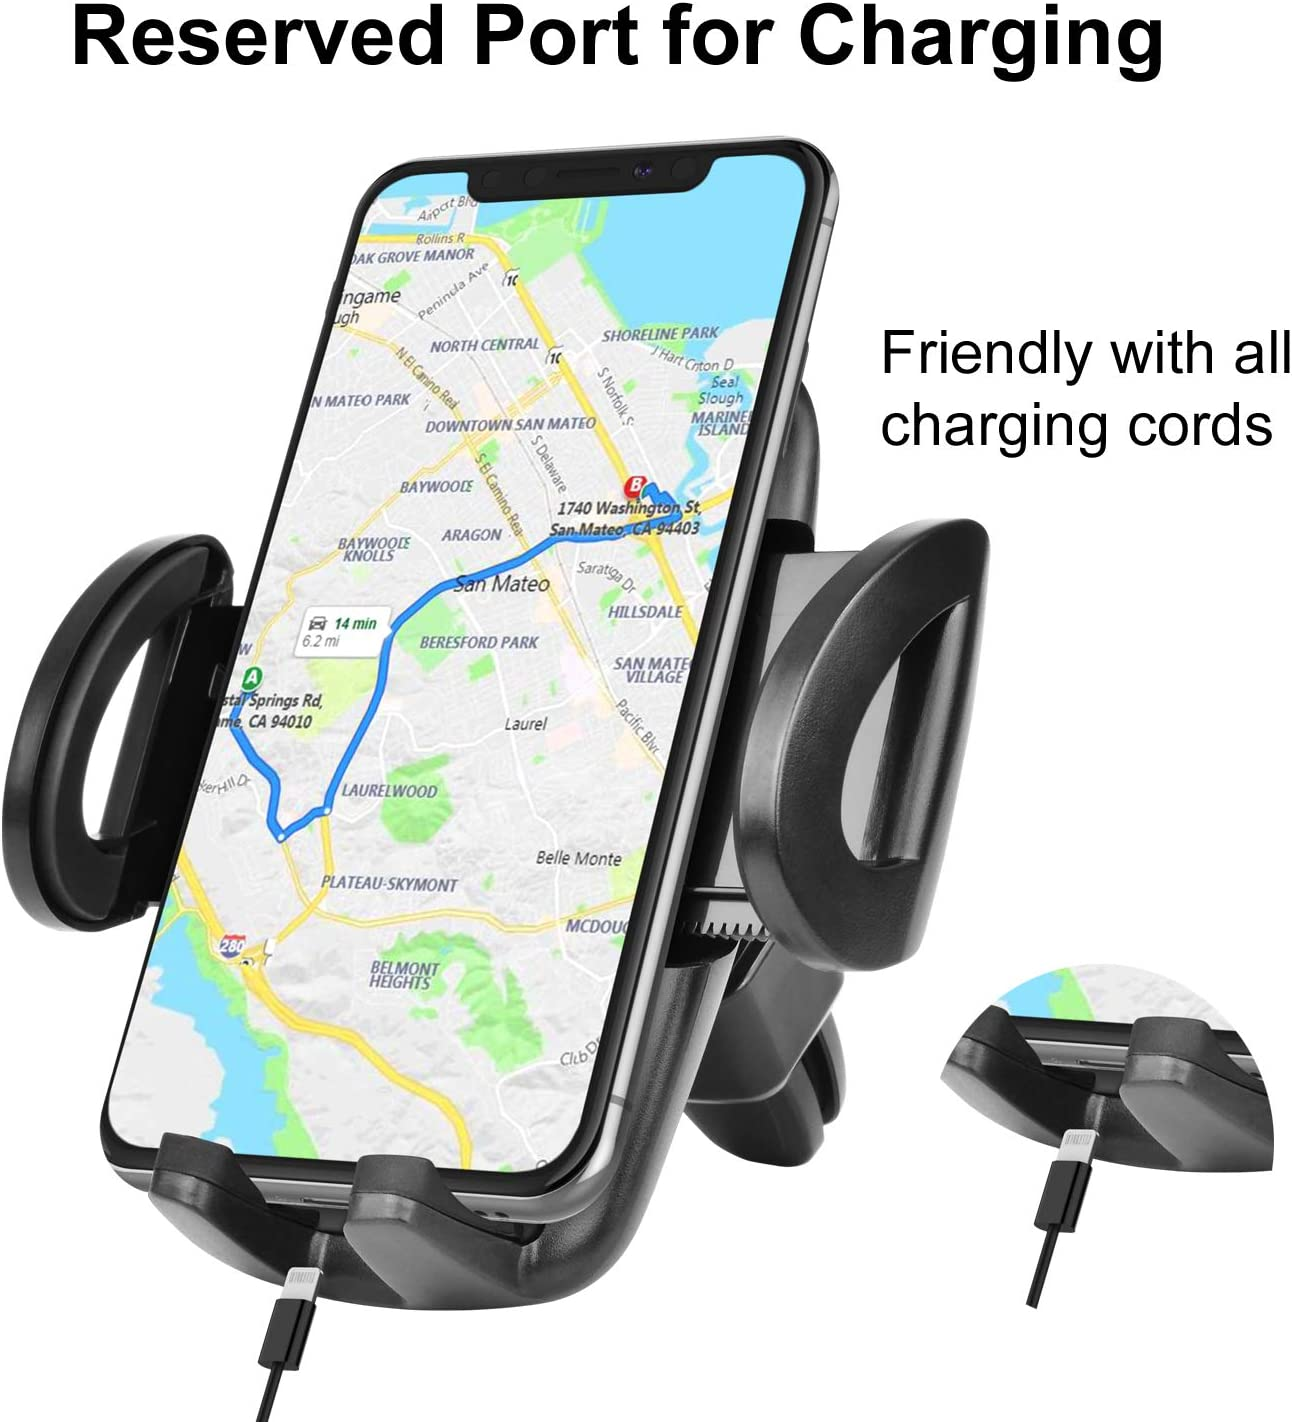 Note 20 Ultra 10 9 Takfox Car Phone Mount for Samsung Galaxy S20 Ultra S20 Plus S10+ S9 S8 S7 J7 J3 A01 A11 A21 A51 A71 A10e A20 A50 Stylo 6,K51,K31 Cell Phone Air Vent Car Mount Phone Holder-Black